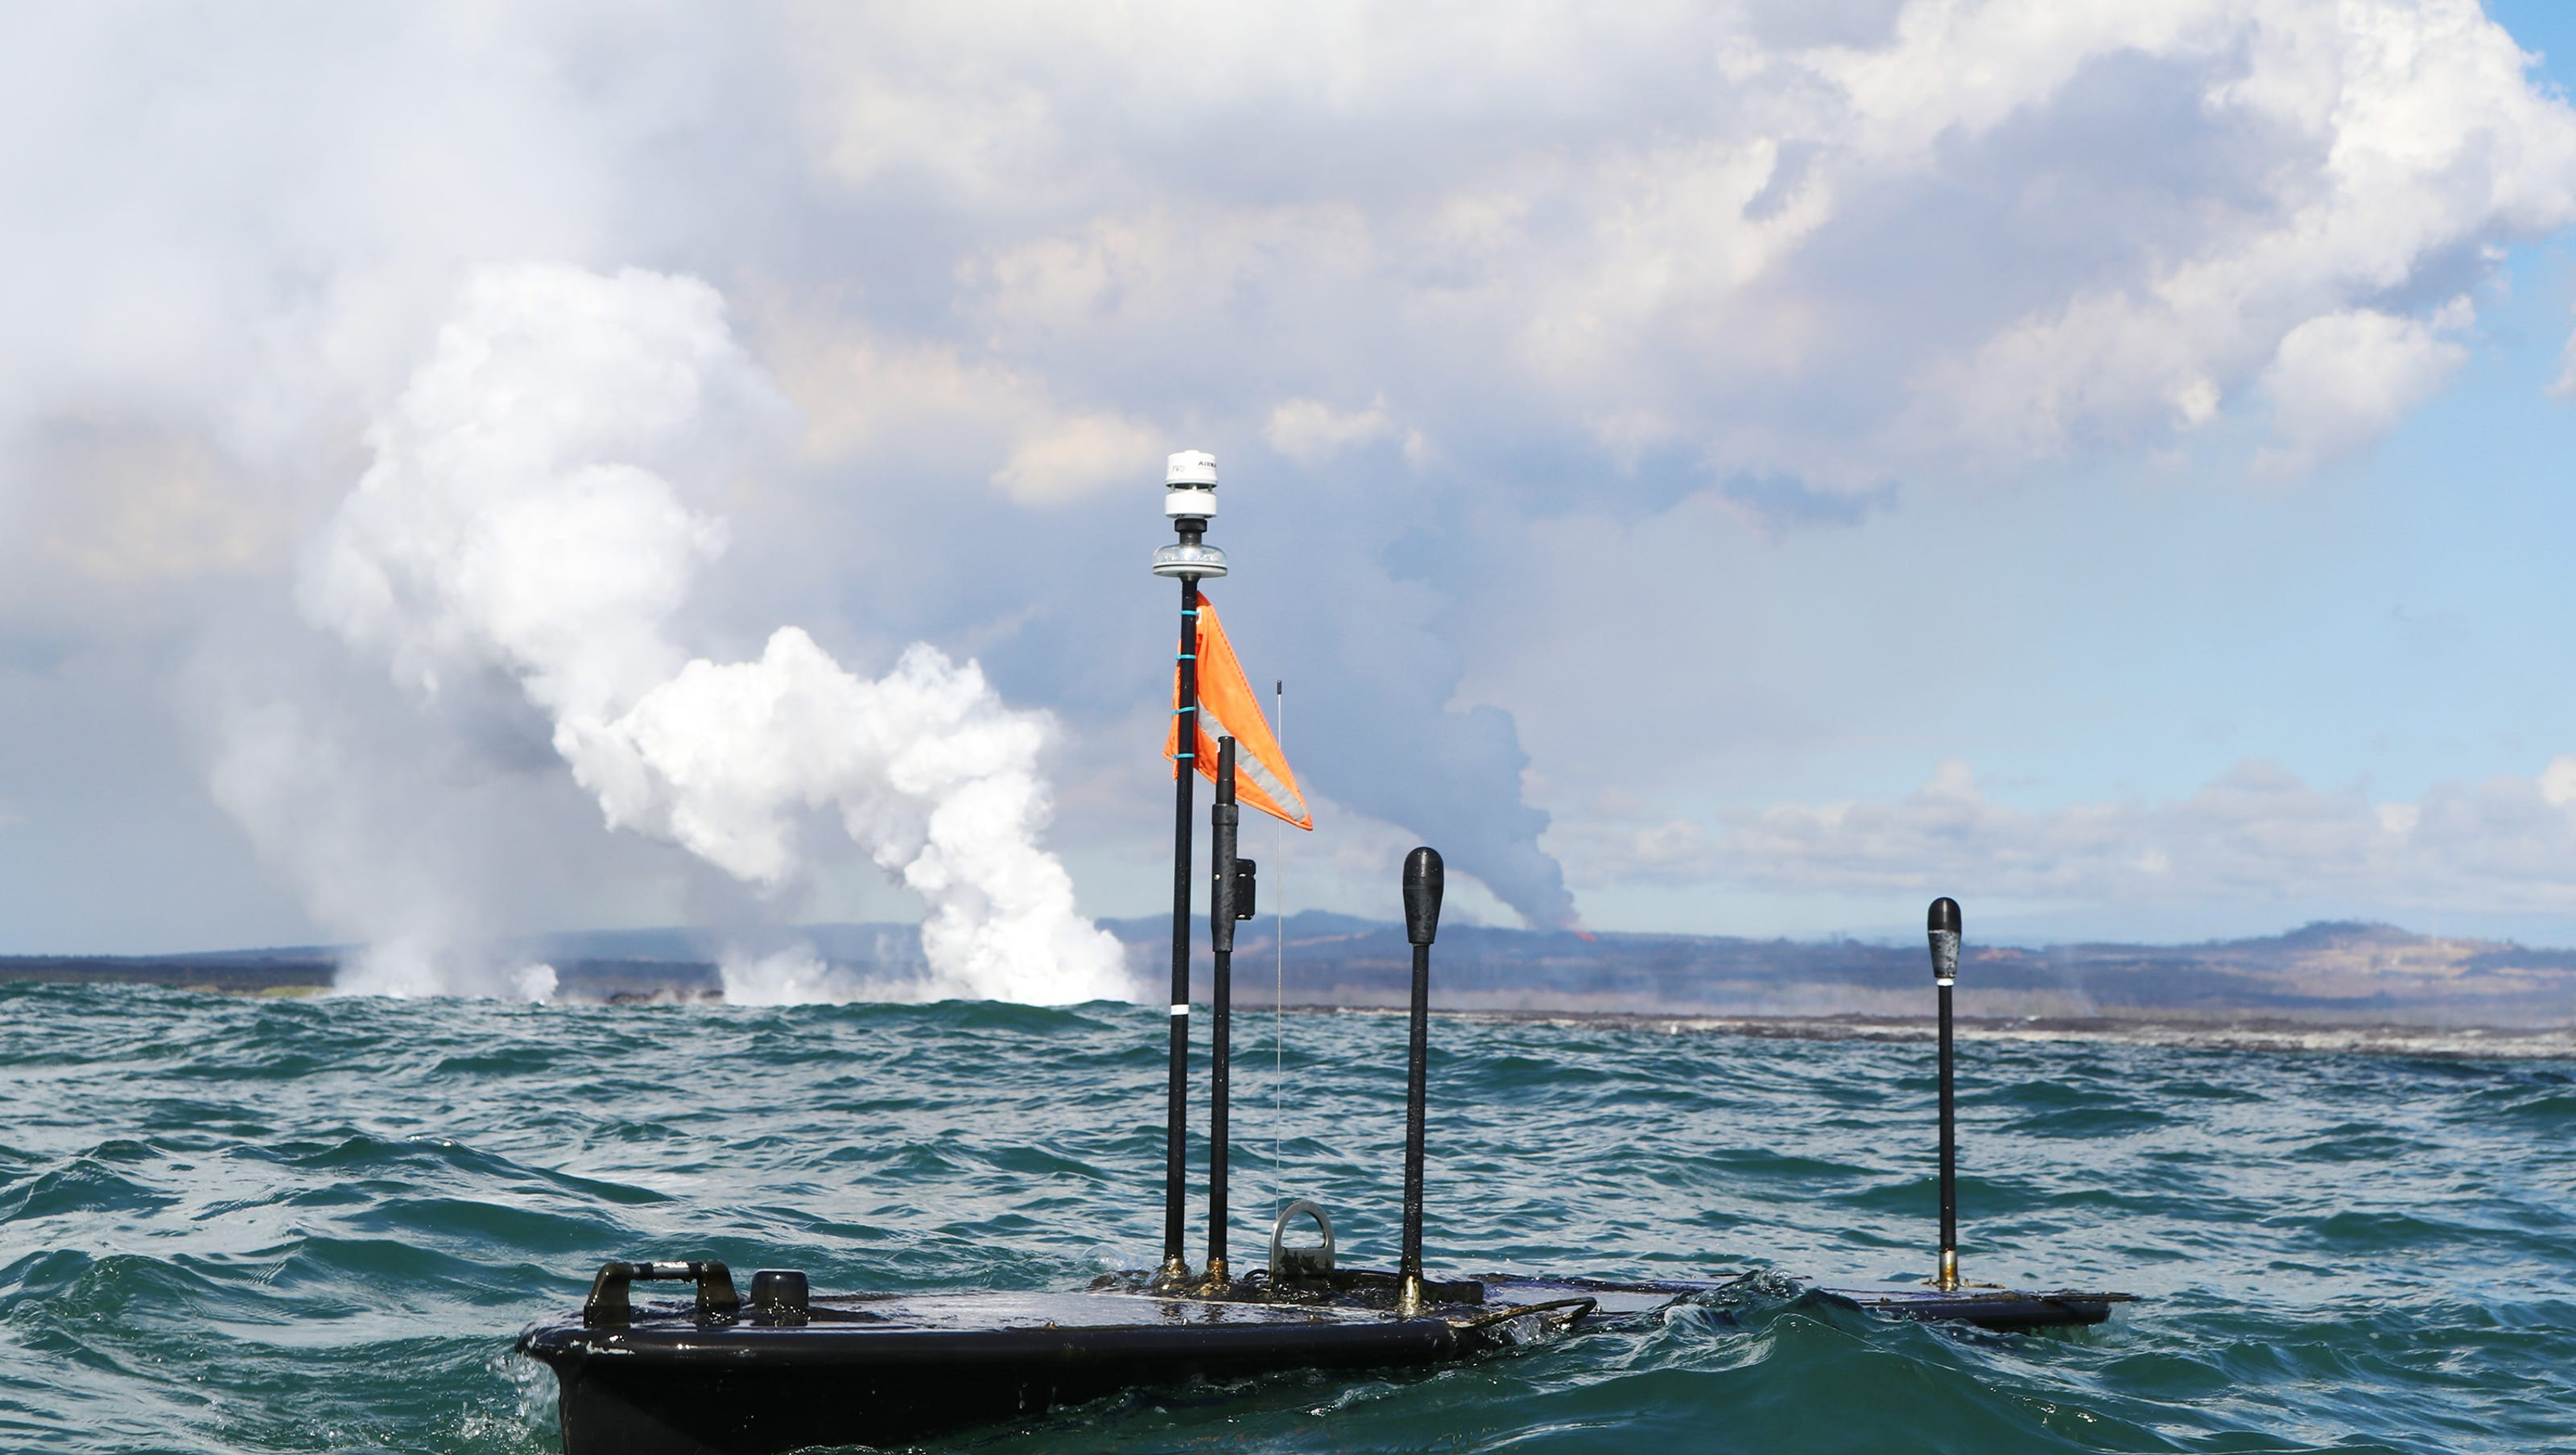 robots helping test waters near lava 2018 picture